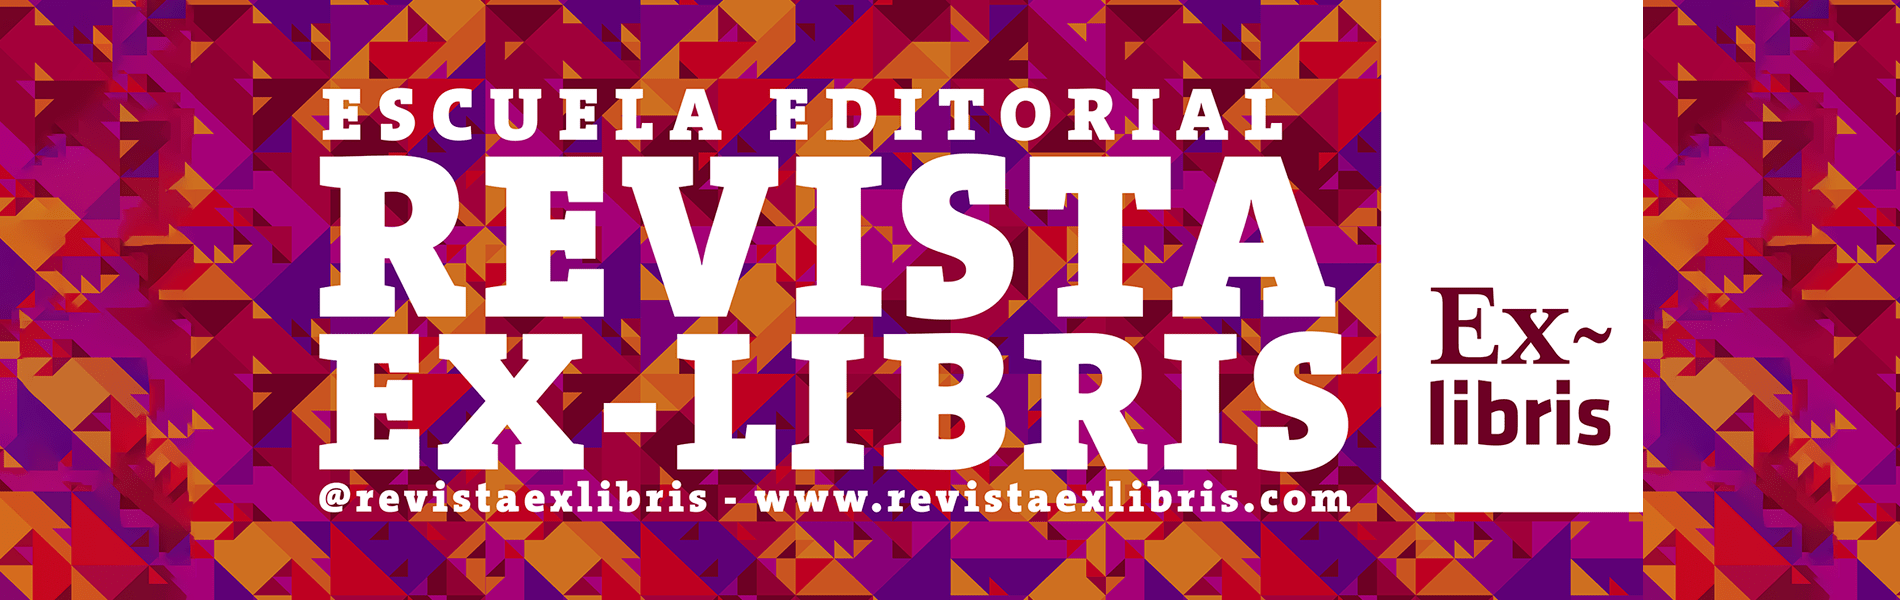 Revista Ex-libris – Escuela Editorial